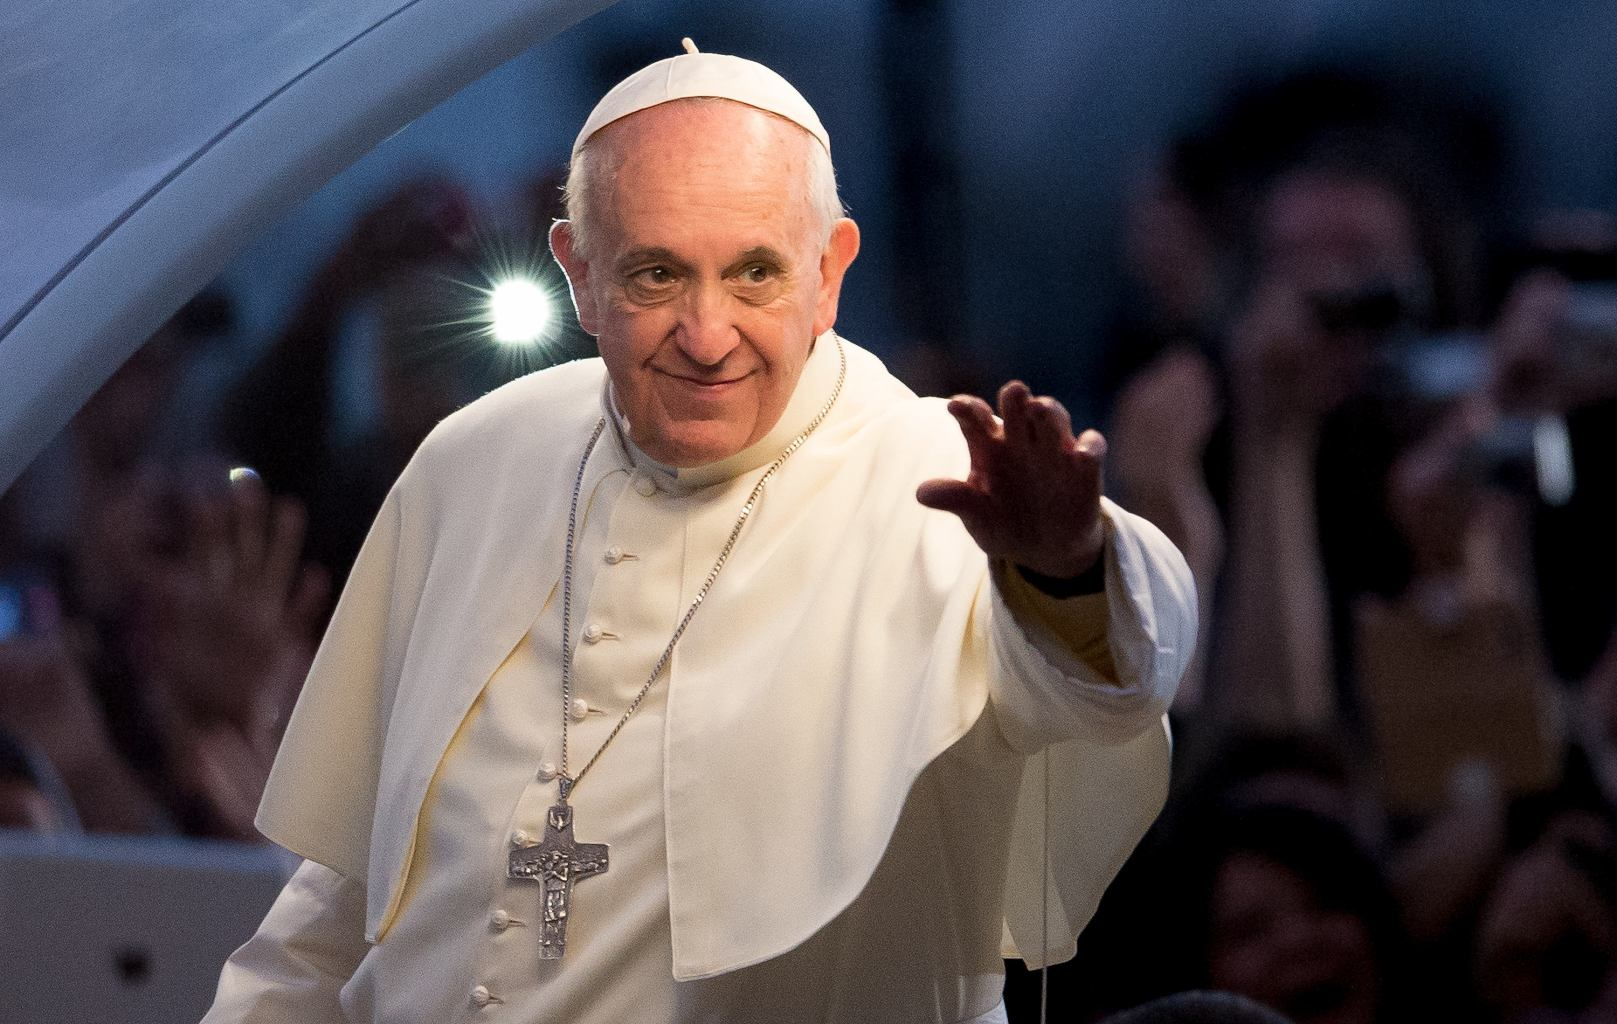 Pope tells his followers to log off for Lent